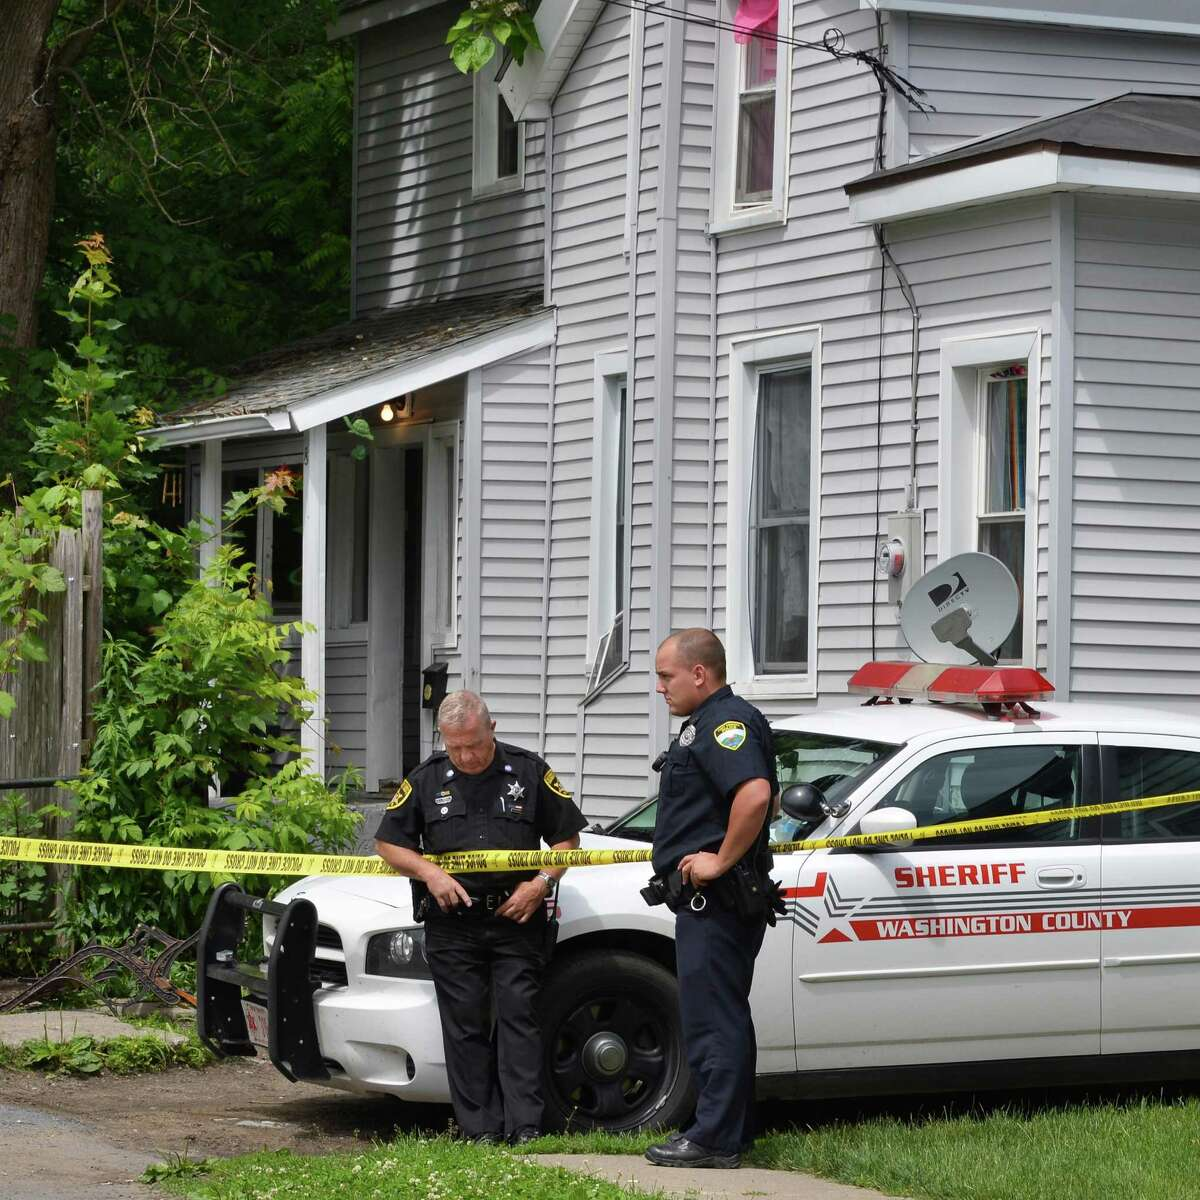 Washington County Sheriff's Deputy Ron Thomas, left, and Patrolman Matt Jackson of the Fort Edward Police Dept. in front of 8 Keating Avenue in Fort Edward Wednesday, June 6, 2012. Authorities say a Gary Cota, 13, died in an accidental shooting in the house. (John Carl D'Annibale / Times Union)